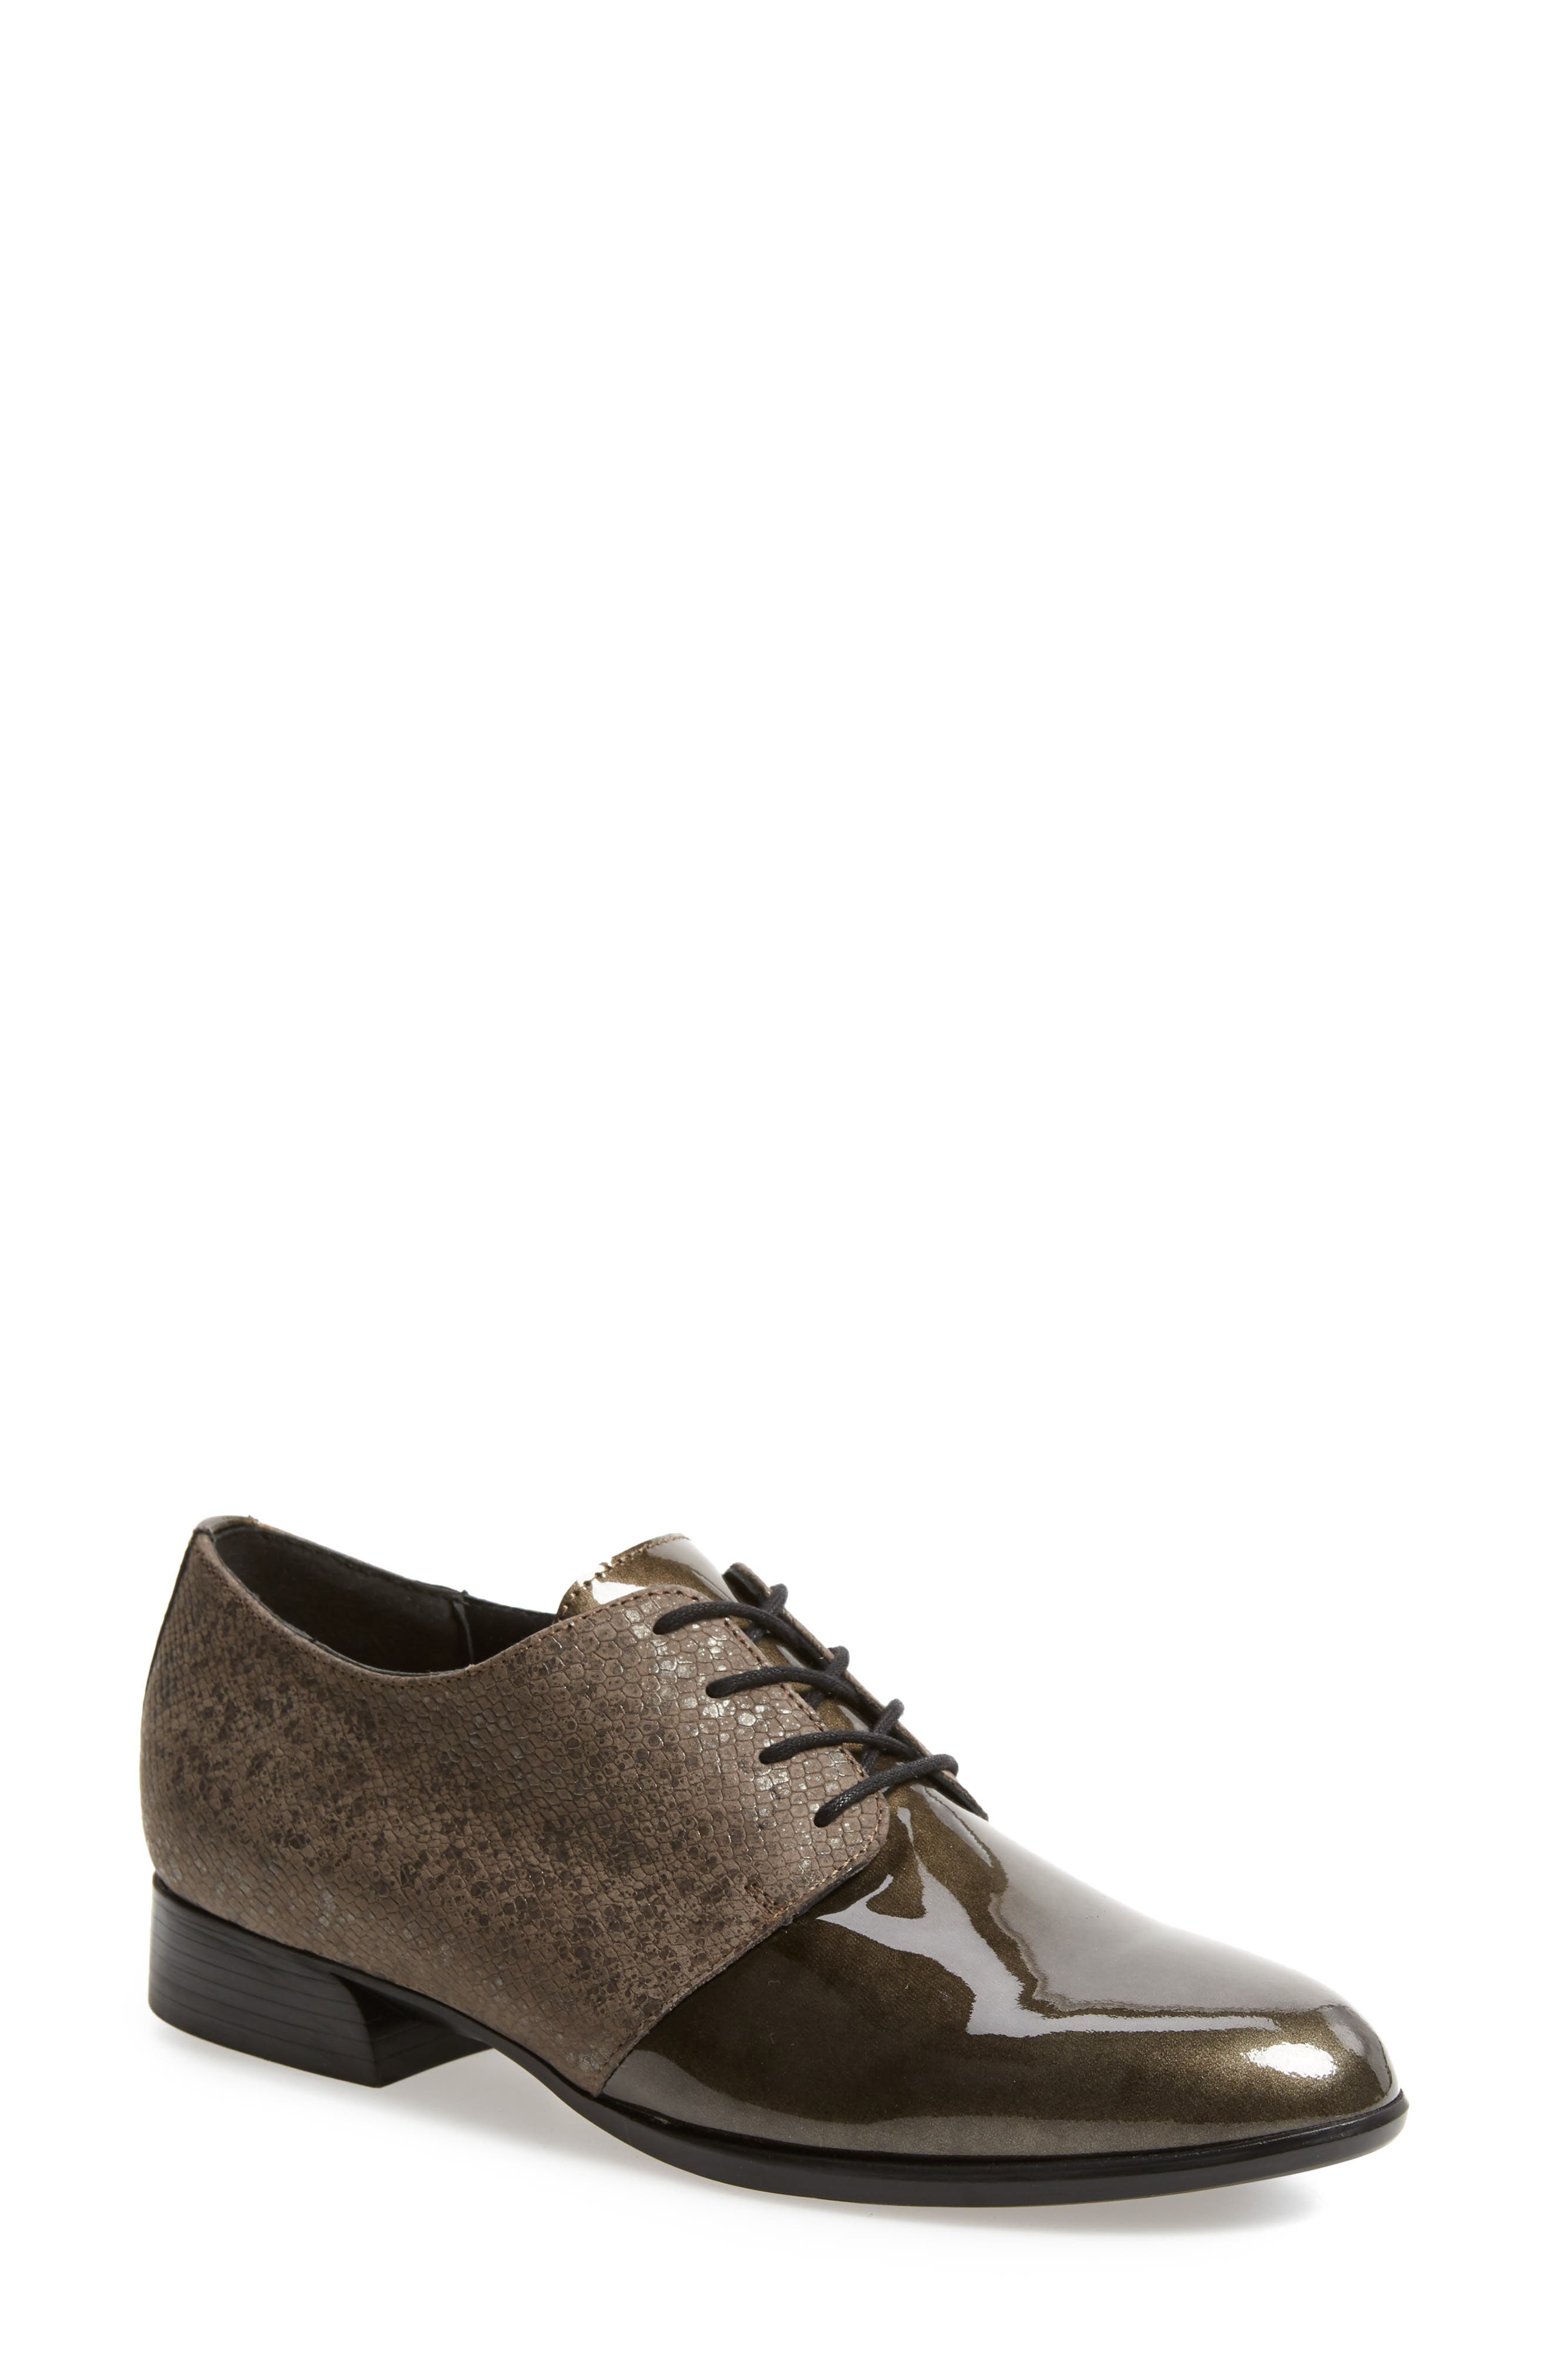 Markella Derby,                             Main thumbnail 1, color,                             GREY PATENT LEATHER